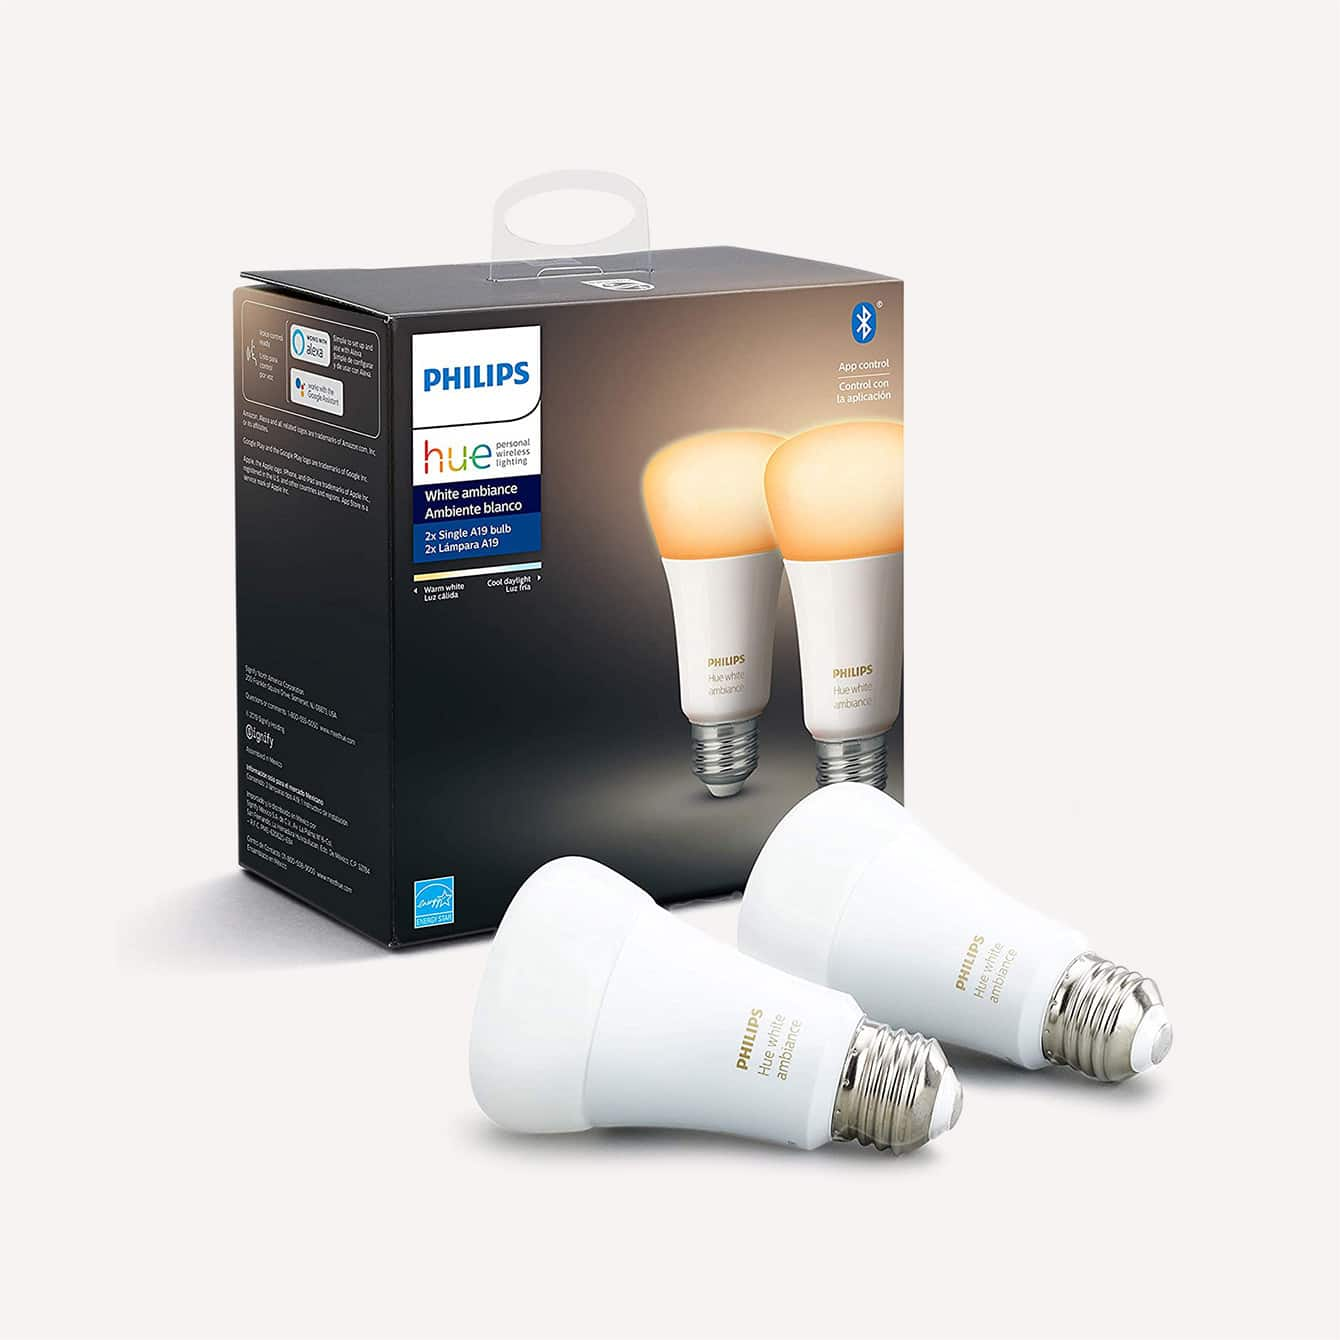 Two Pack Phillips Hue White A19 LED Smart Bulb